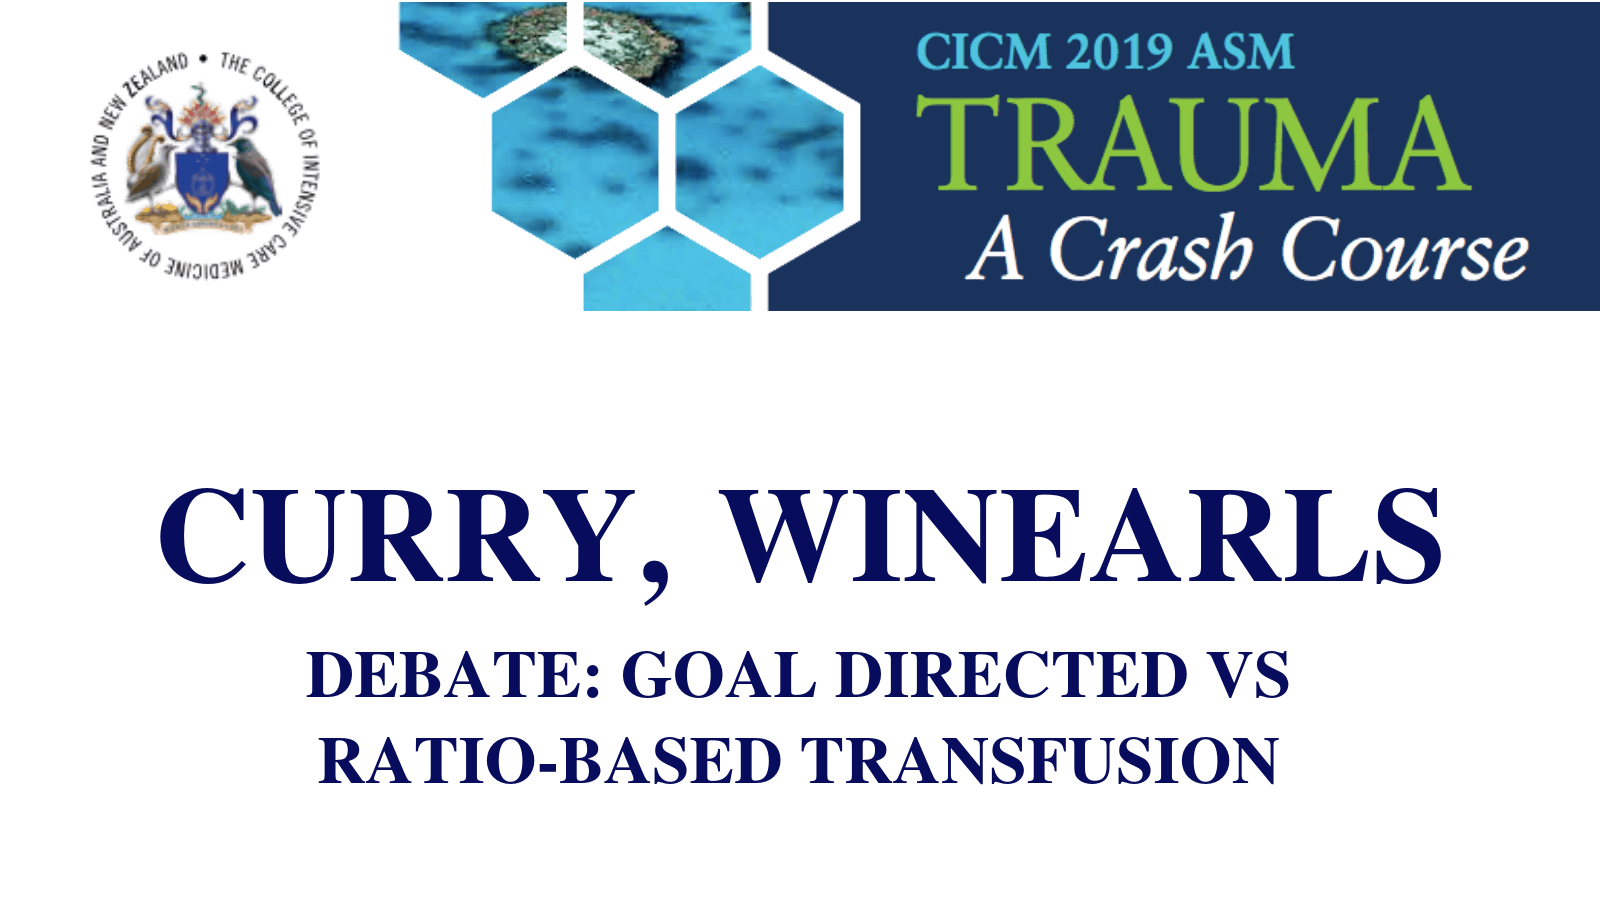 Debate Goal directed vs ratiobased transfusion